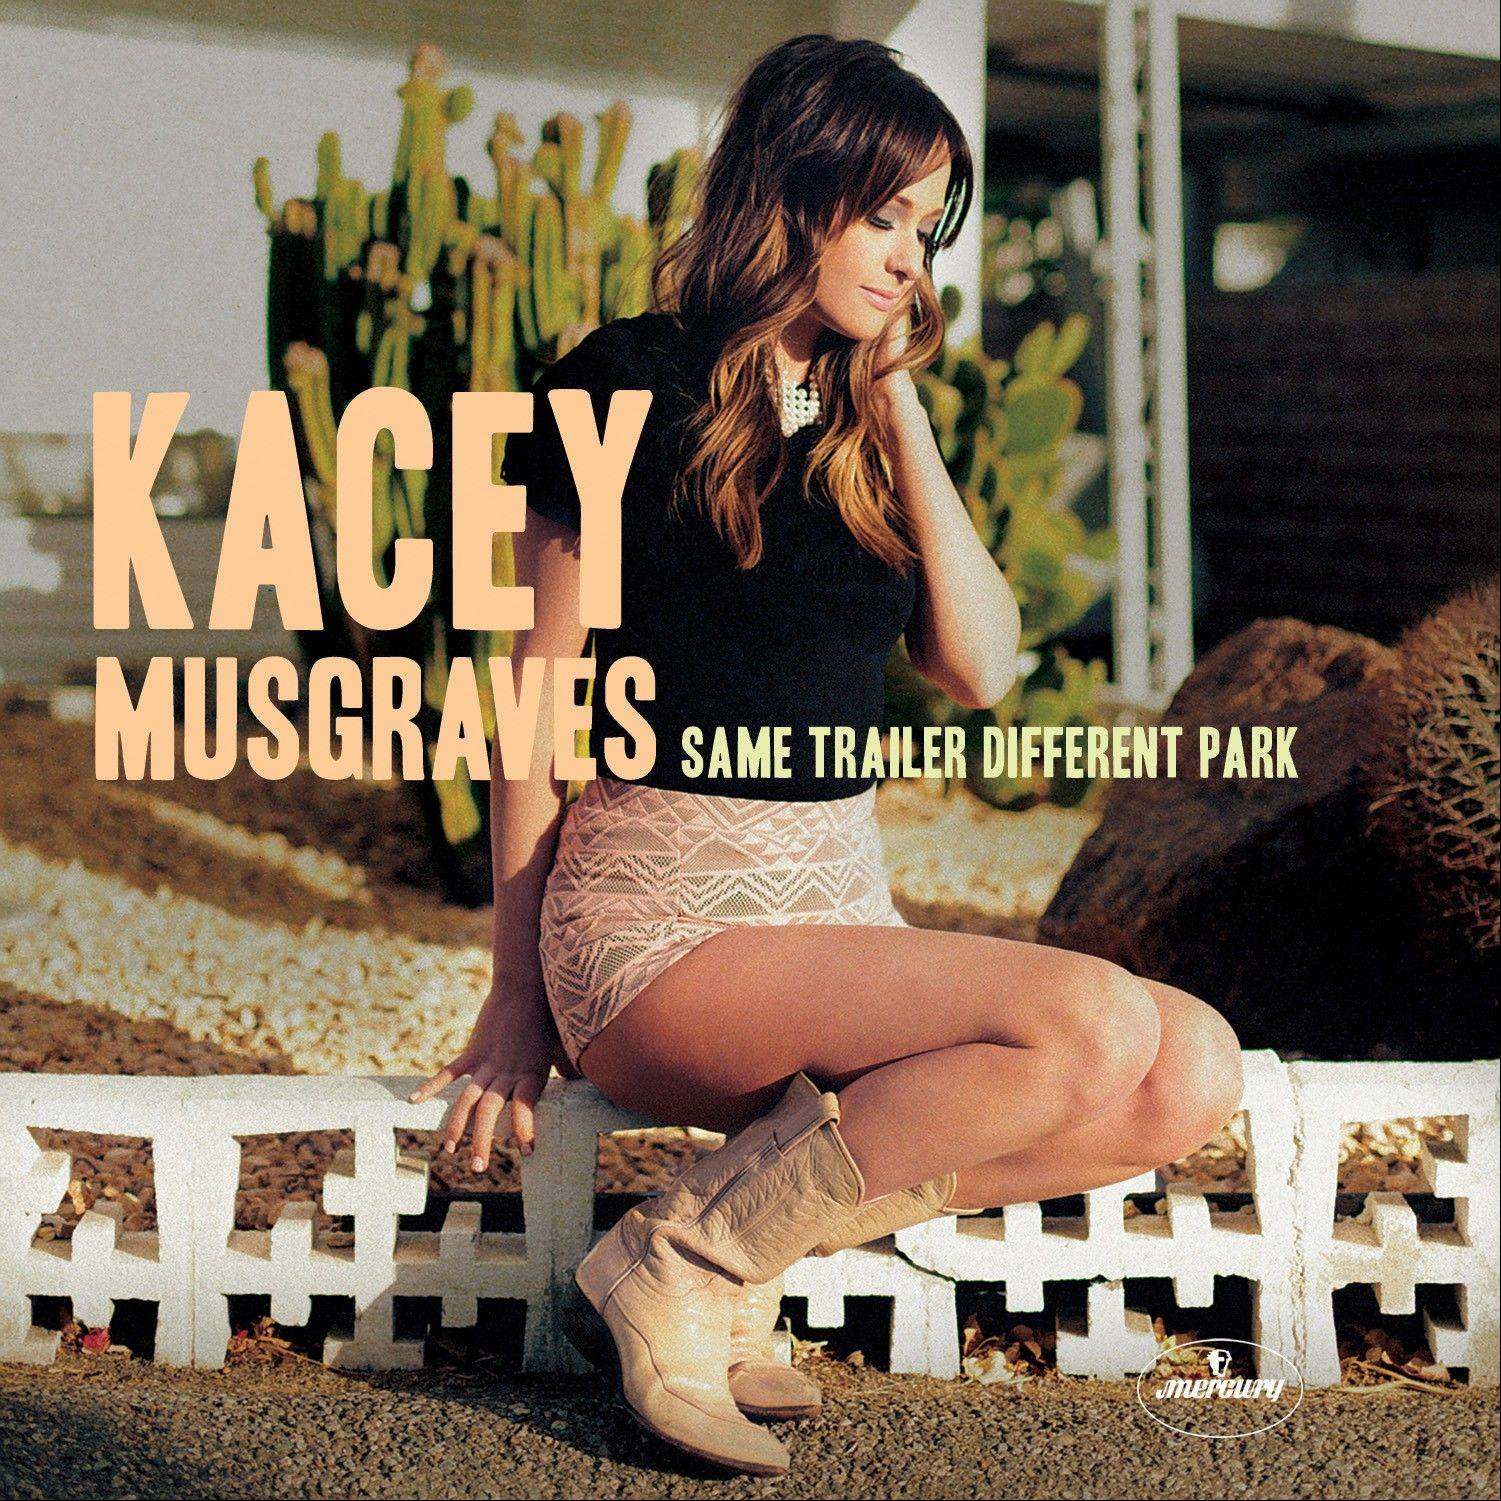 Good music come from Musgraves' 'Trailer'